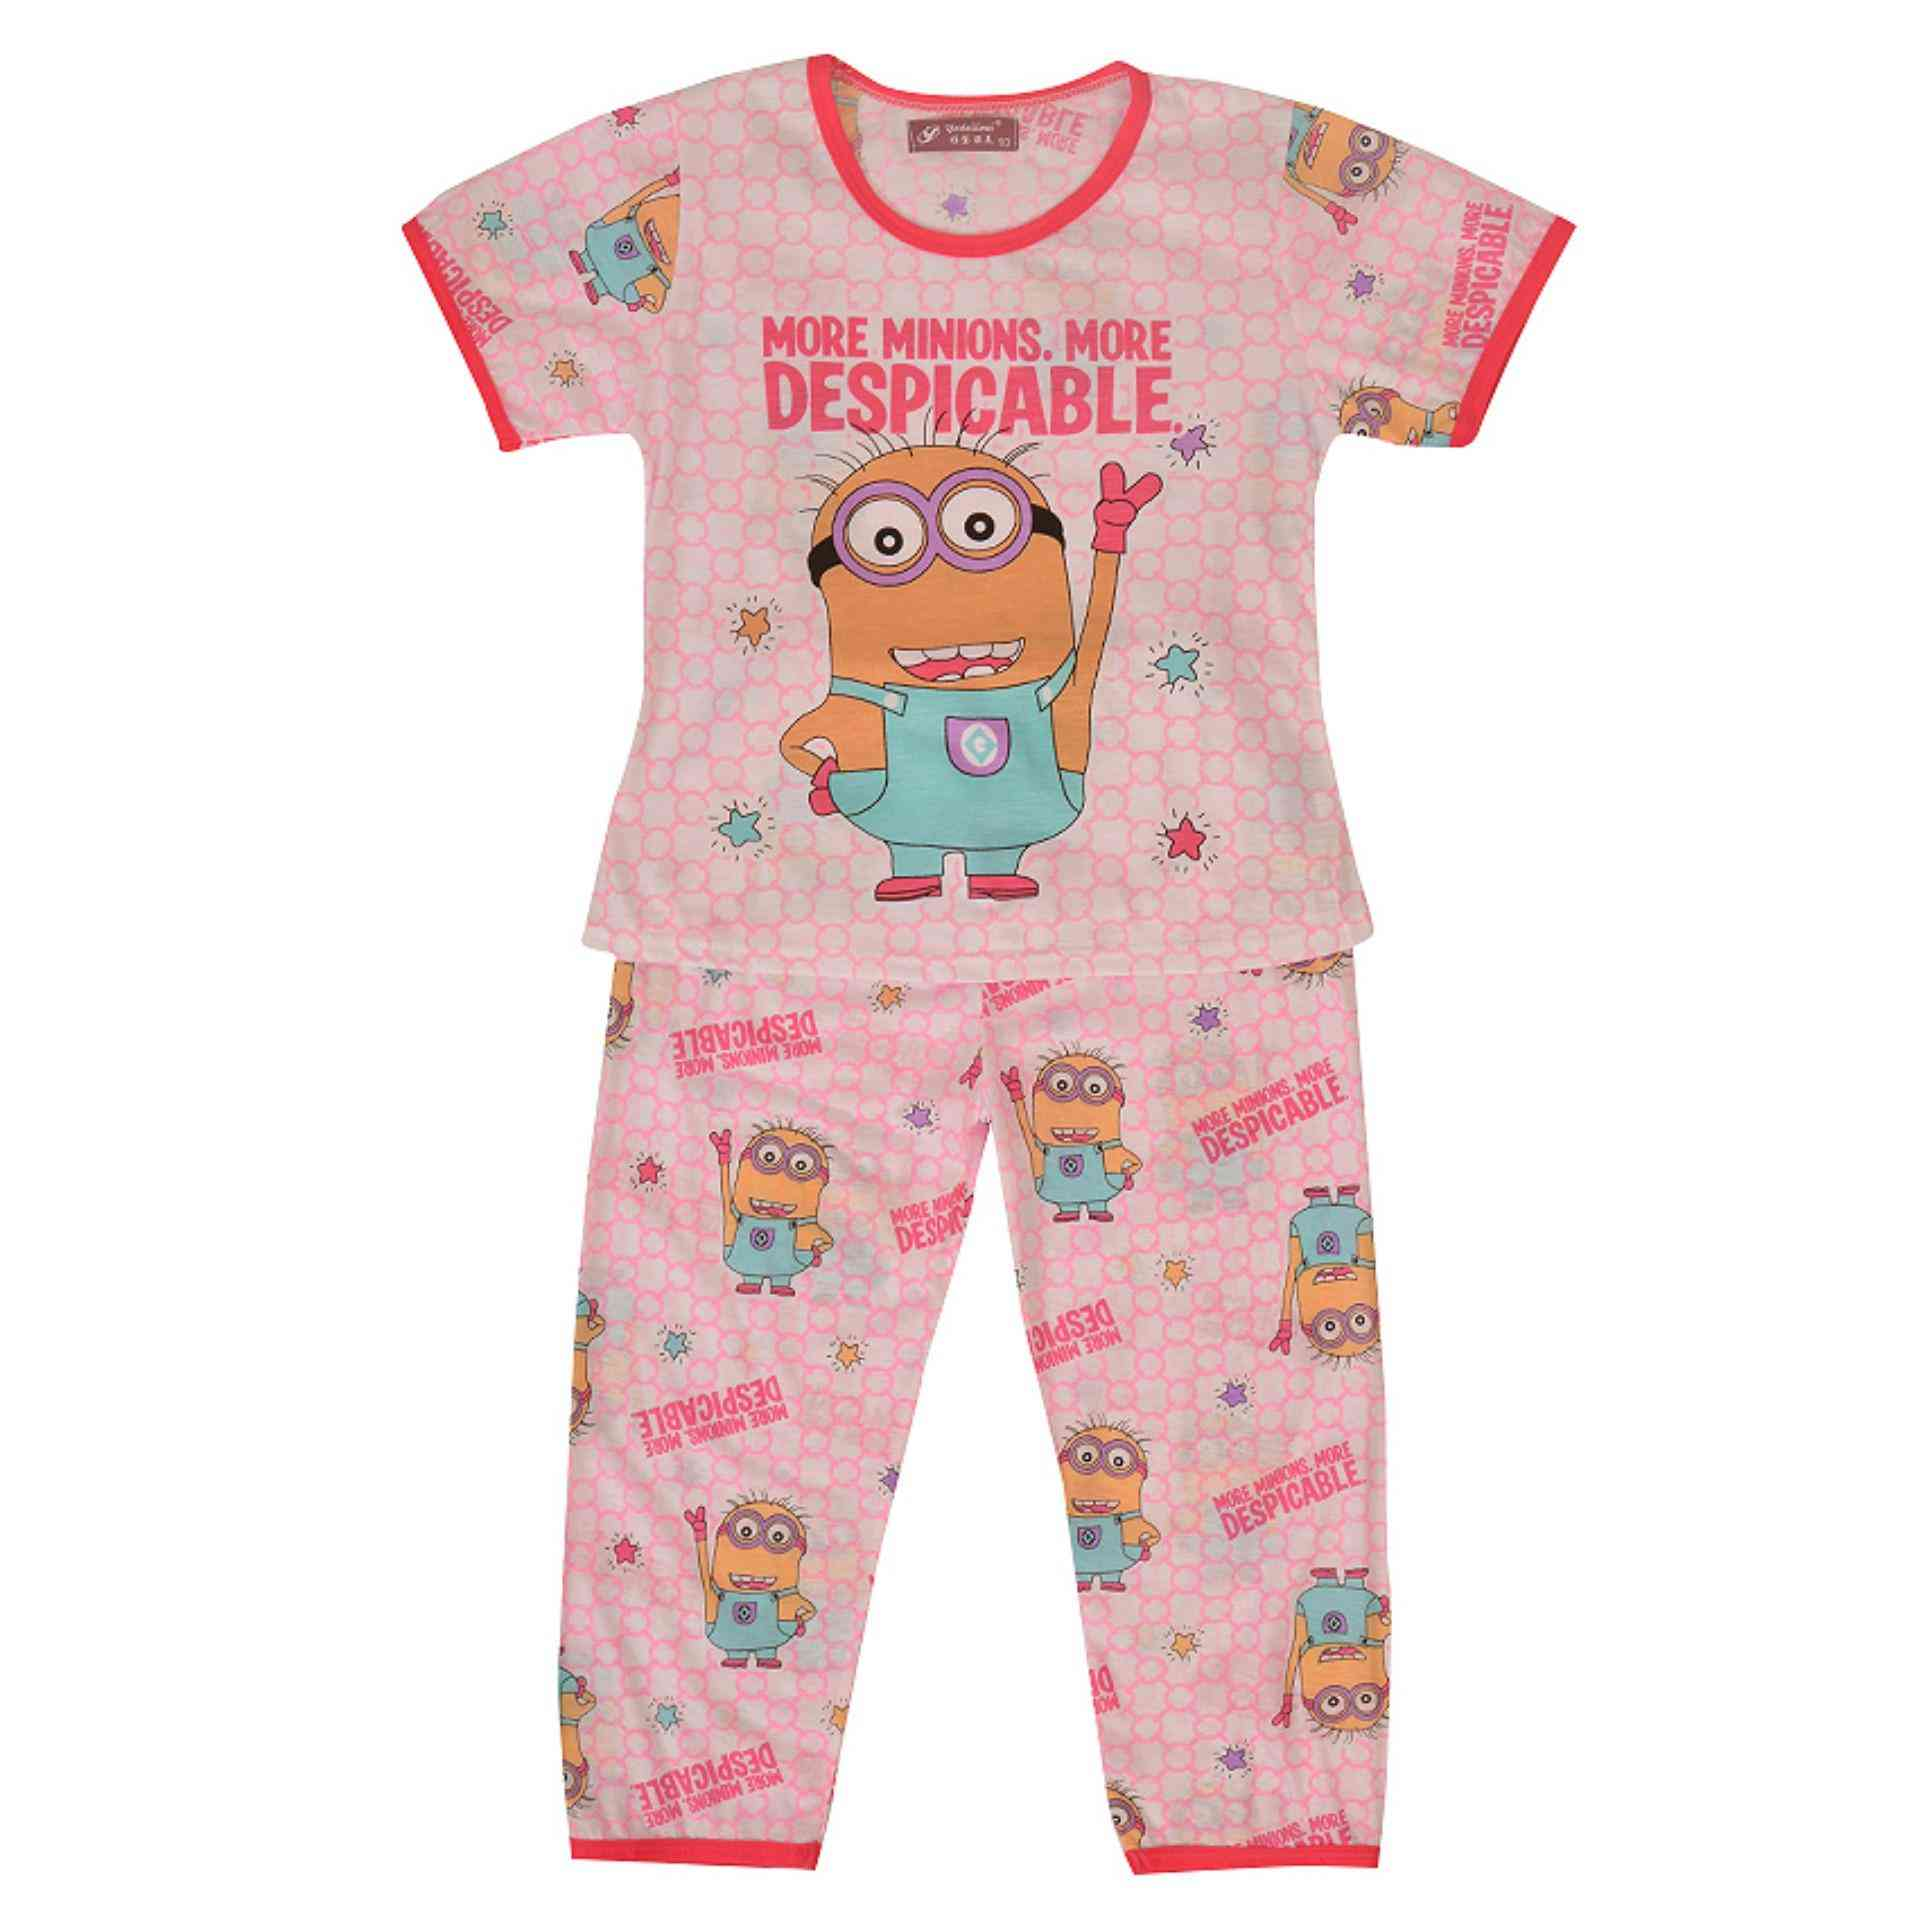 Pack of 2 Pure Cotton Night Suit (Pajama + Tshirt) for Girls - Minnions